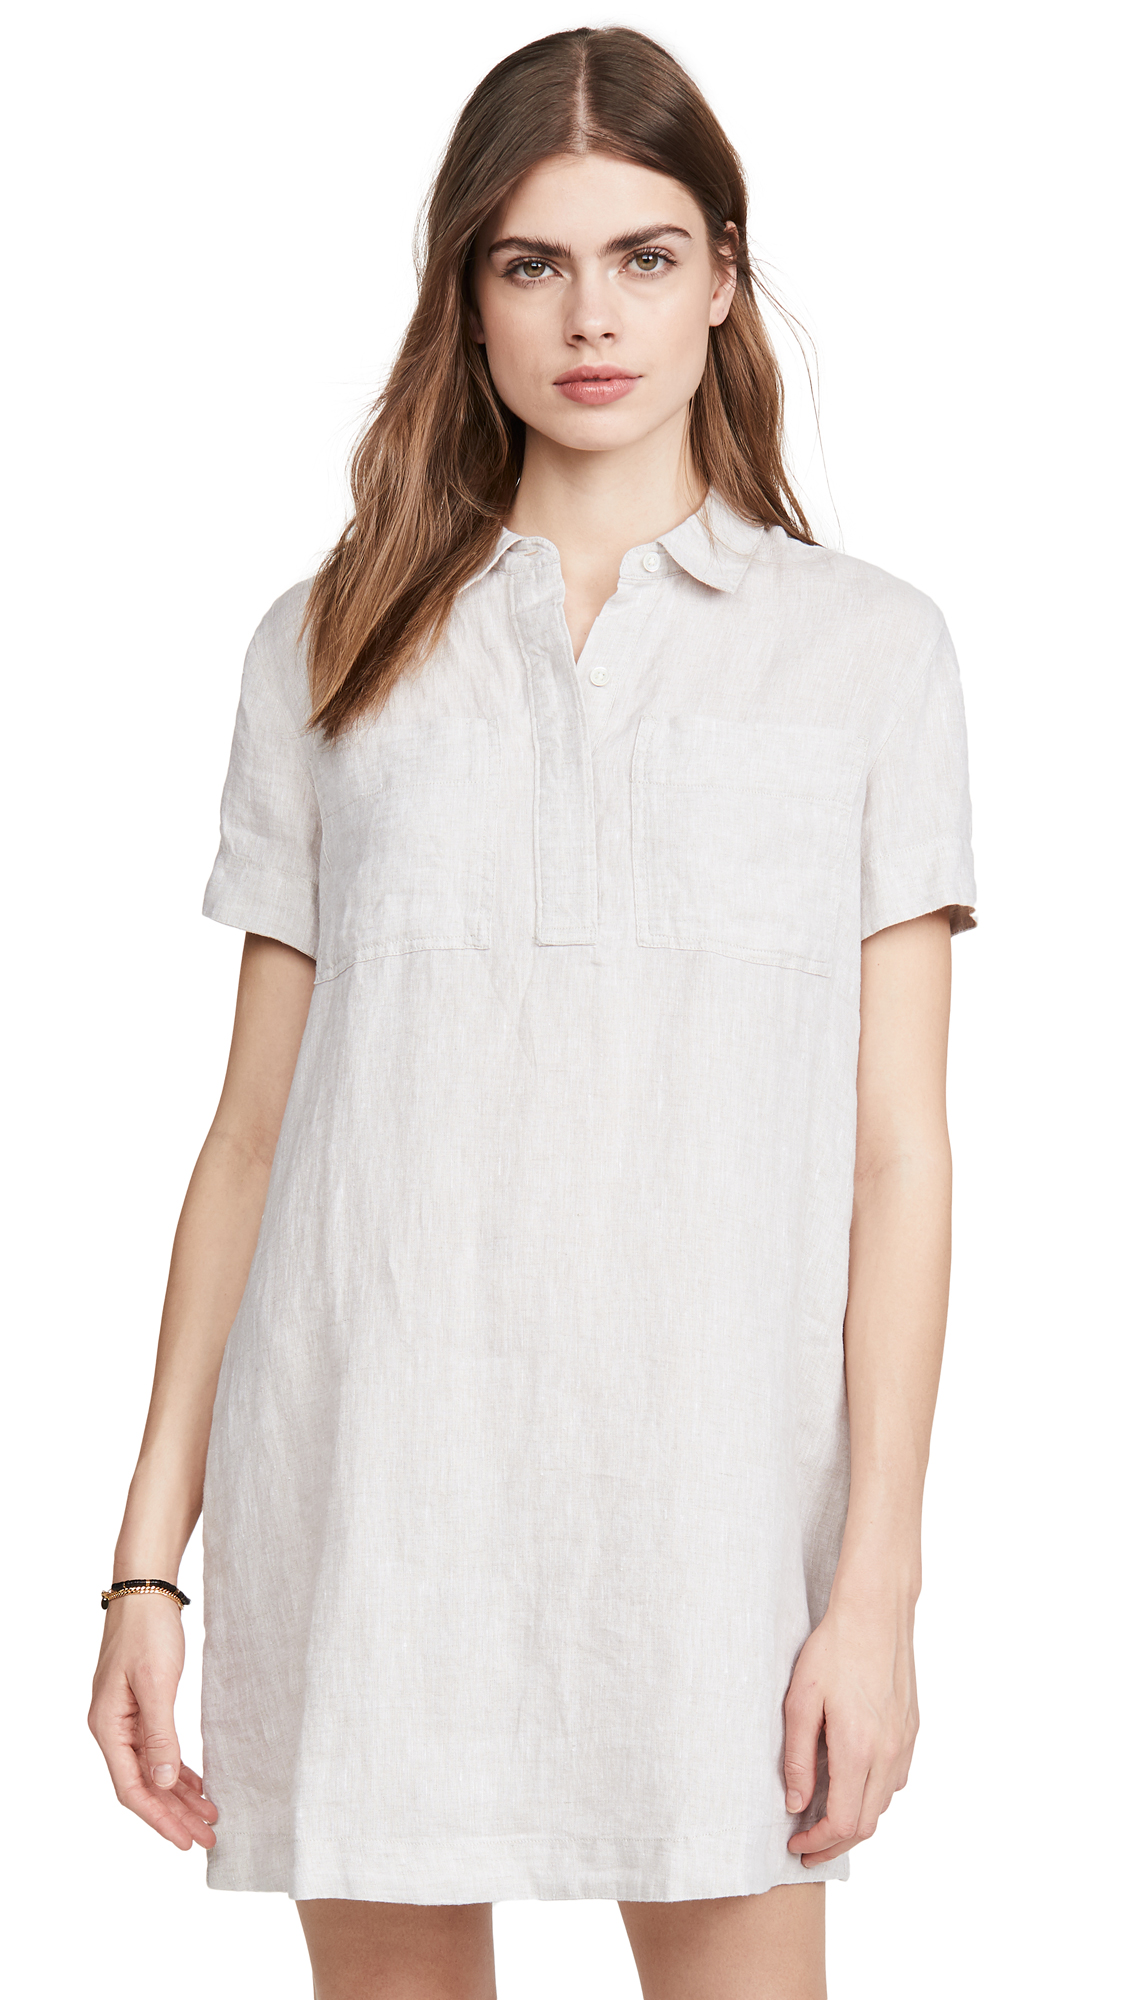 Buy James Perse Linen Pocket Shirtdress online beautiful James Perse Clothing, Dresses